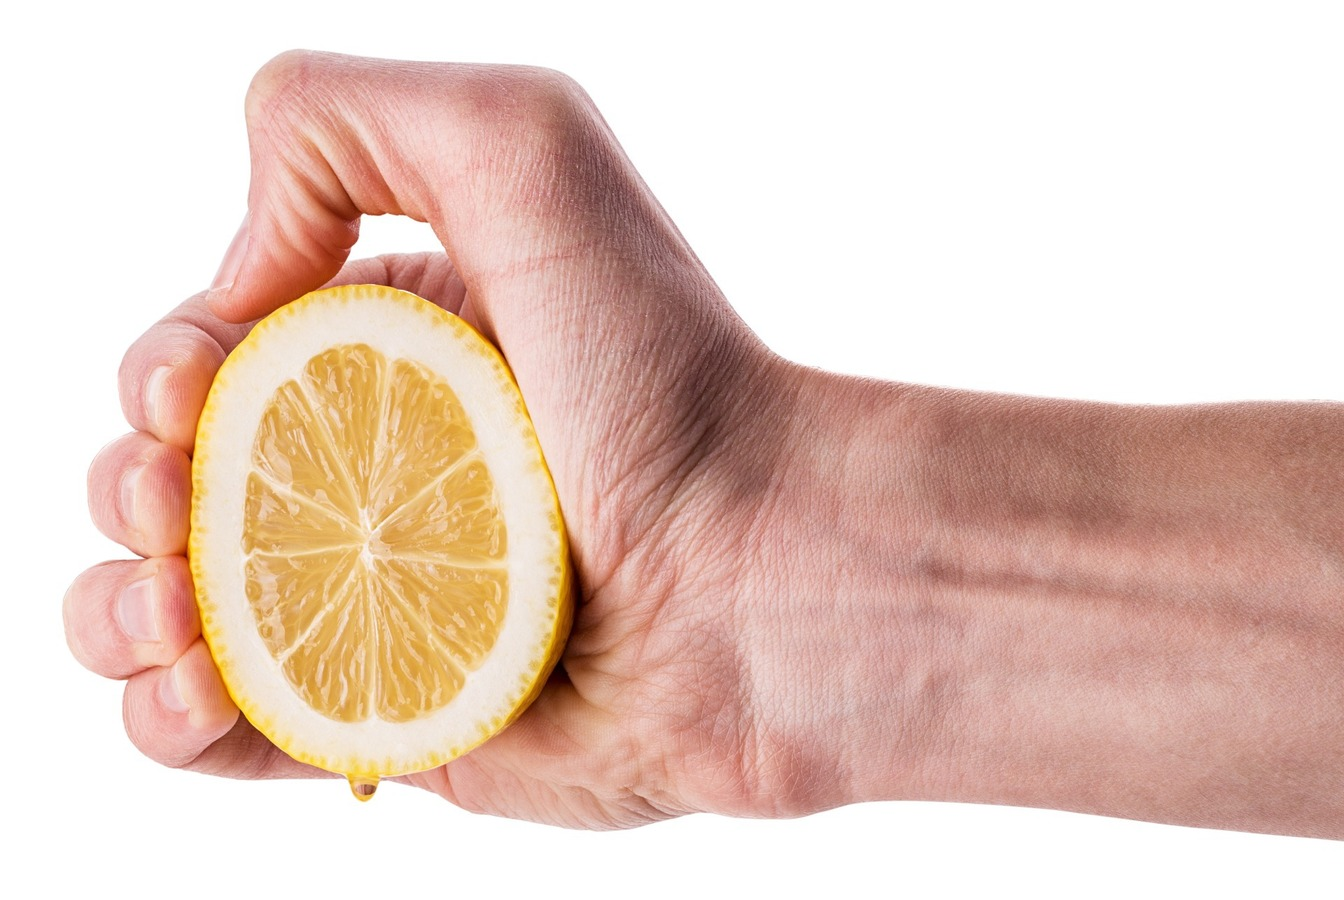 A hand squeezing half a lemon, with some juice dripping down